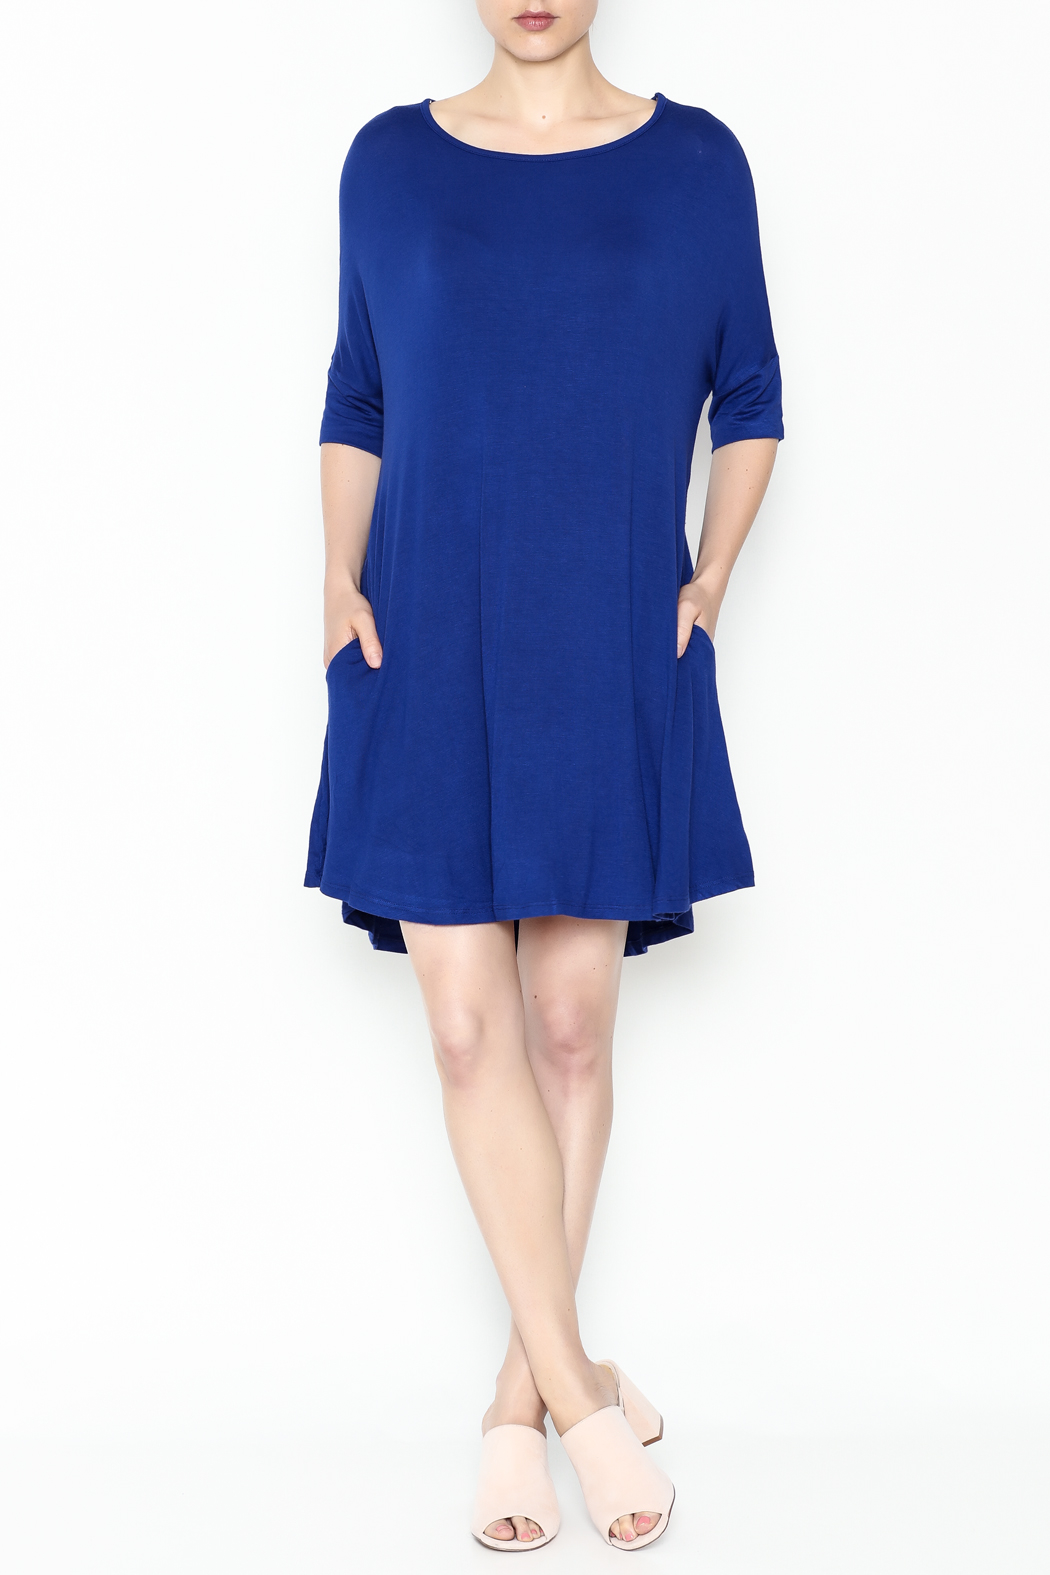 Umgee USA Royal Blue Tee Dress - Side Cropped Image